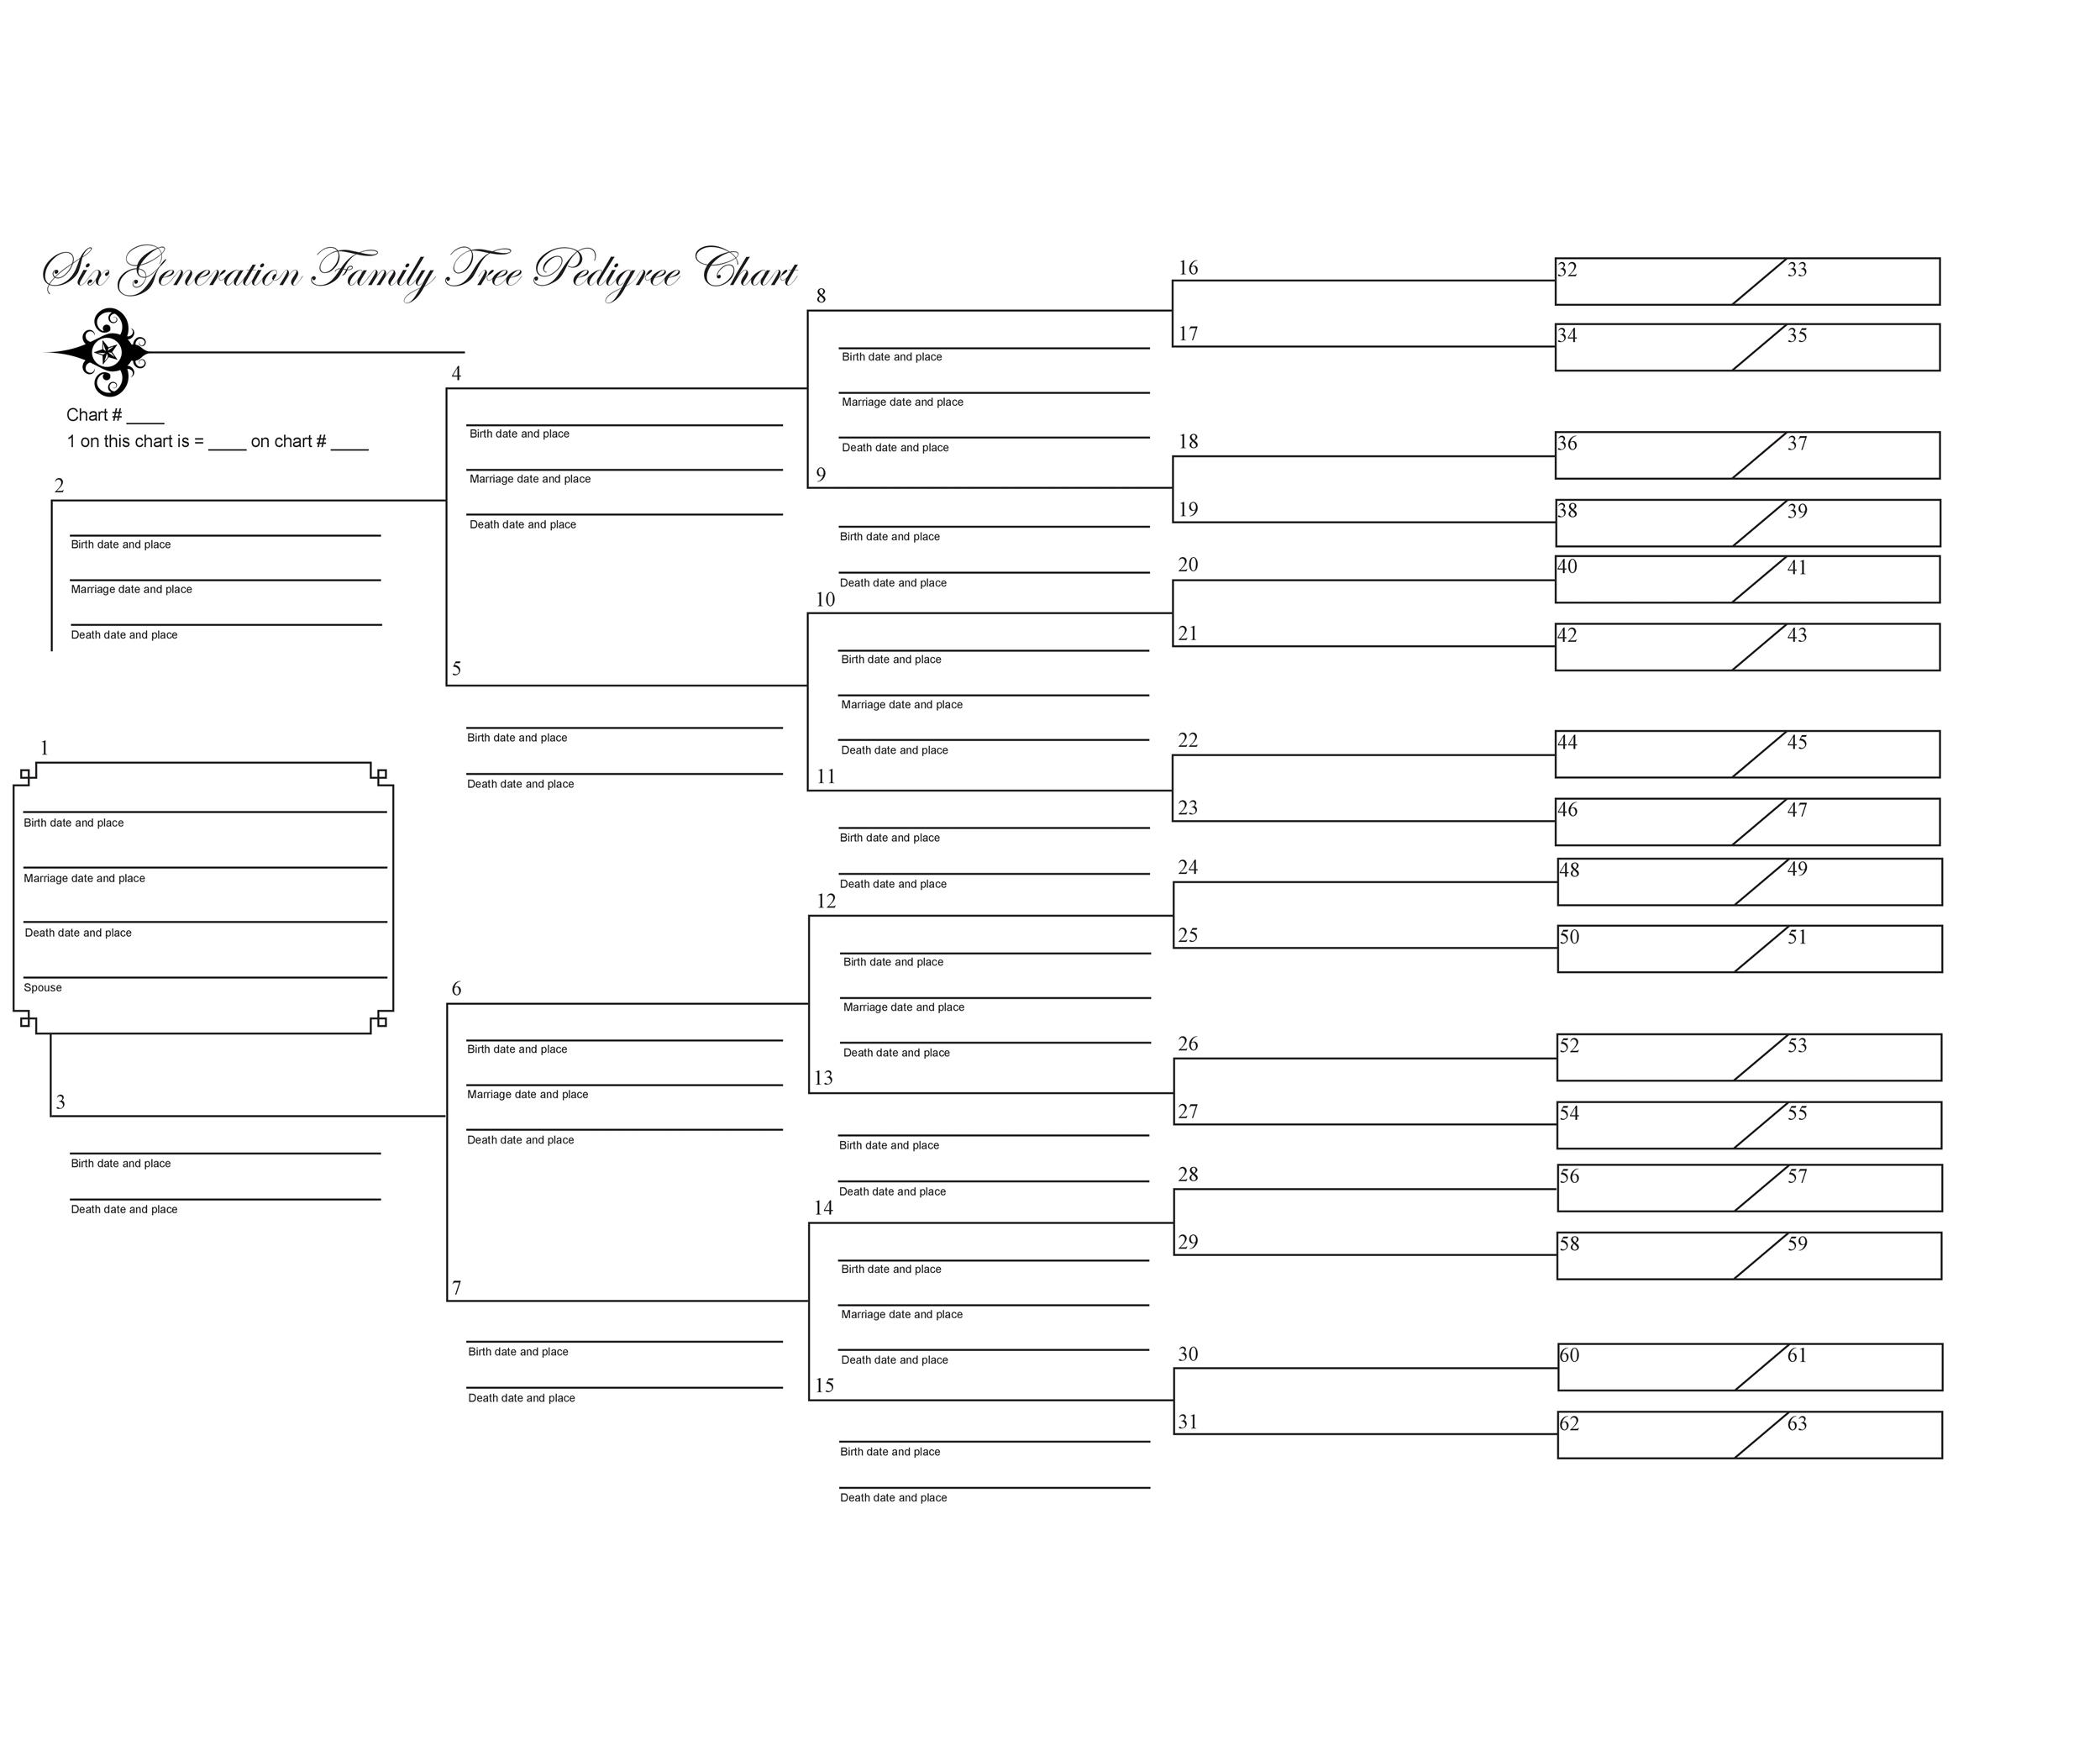 40+ Free Family Tree Templates (Word, Excel, PDF) - Template Lab